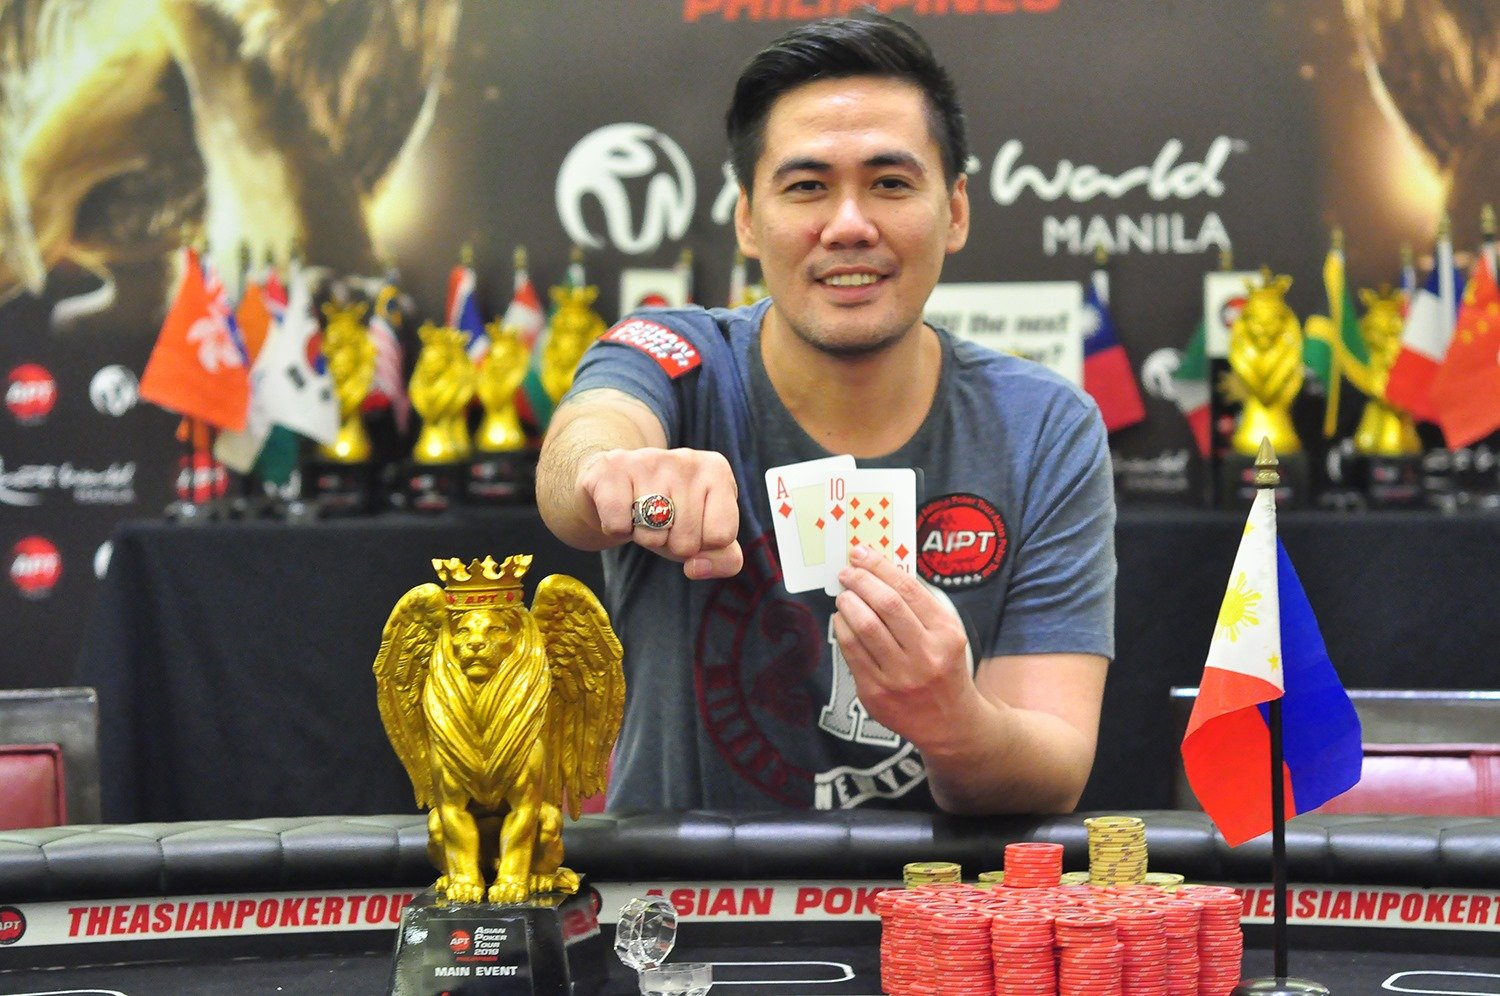 APT Philippines early highlights: Christopher Mateo wins the Main Event; Iori Yogo & Narutoshi Otsuka win High Rollers